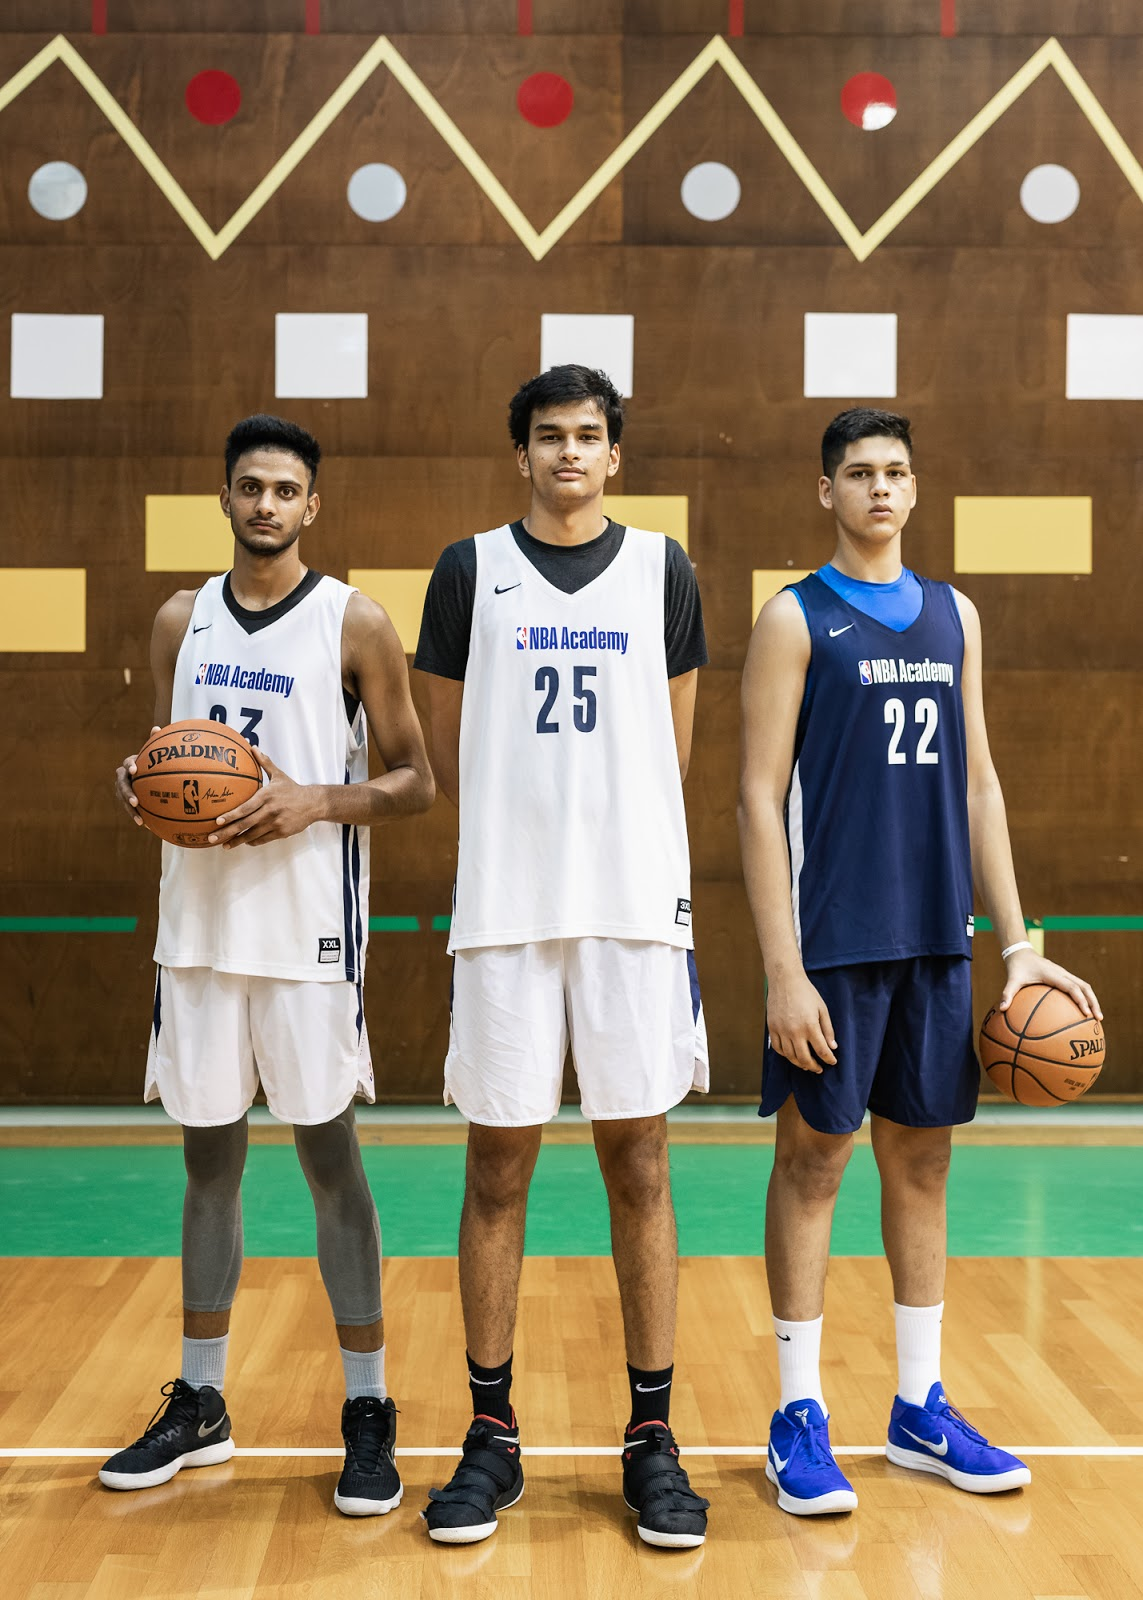 5afe5a53846f The three Indian players representing India presented a tantalising  combination of youth and size  Princepal Singh (age 17